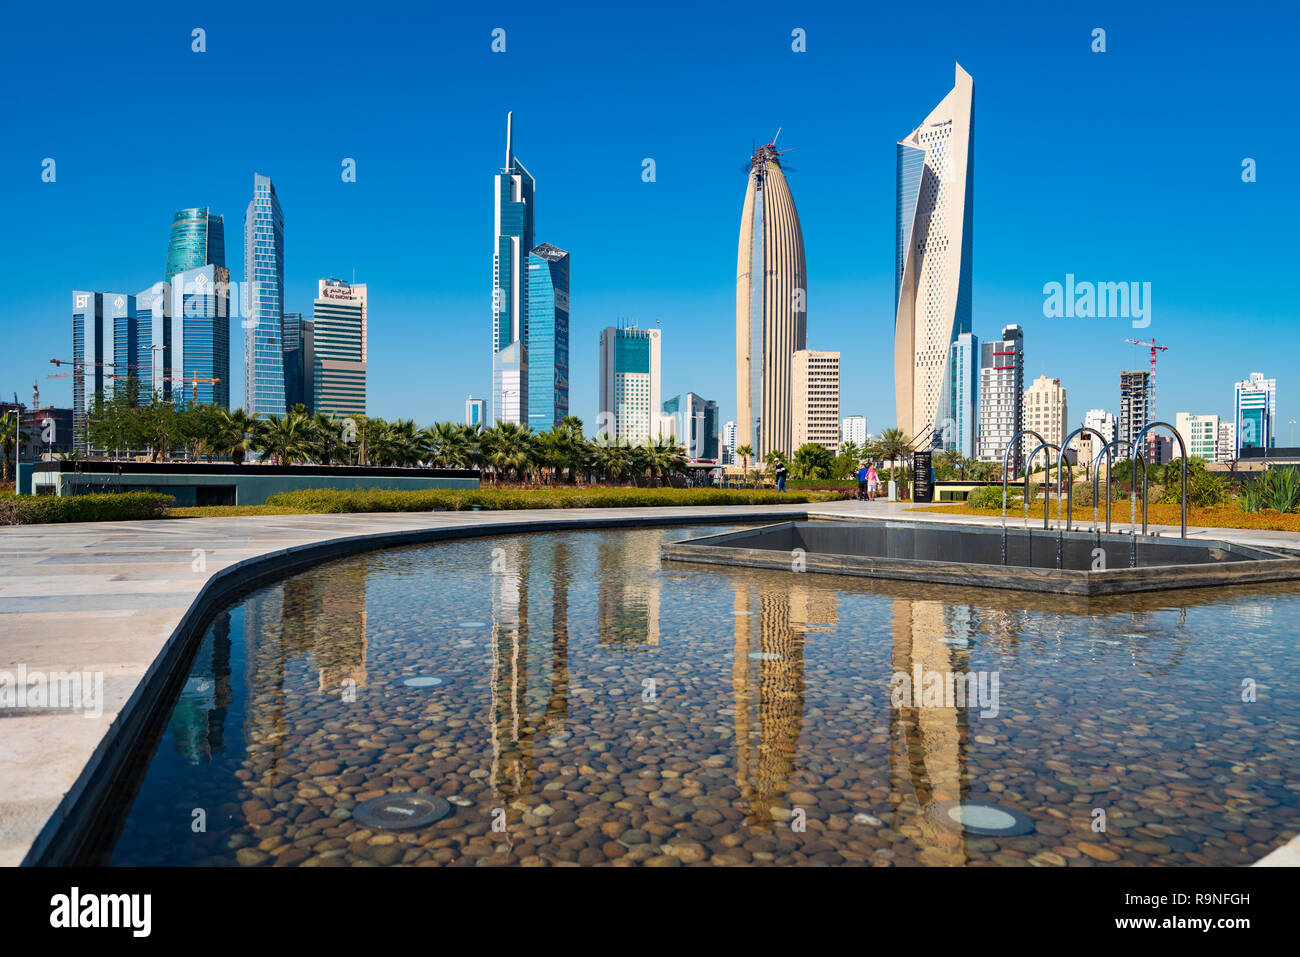 Daytime skyline of downtown Kuwait City from Al Shaheed Park in Kuwait, Middle East - Stock Image